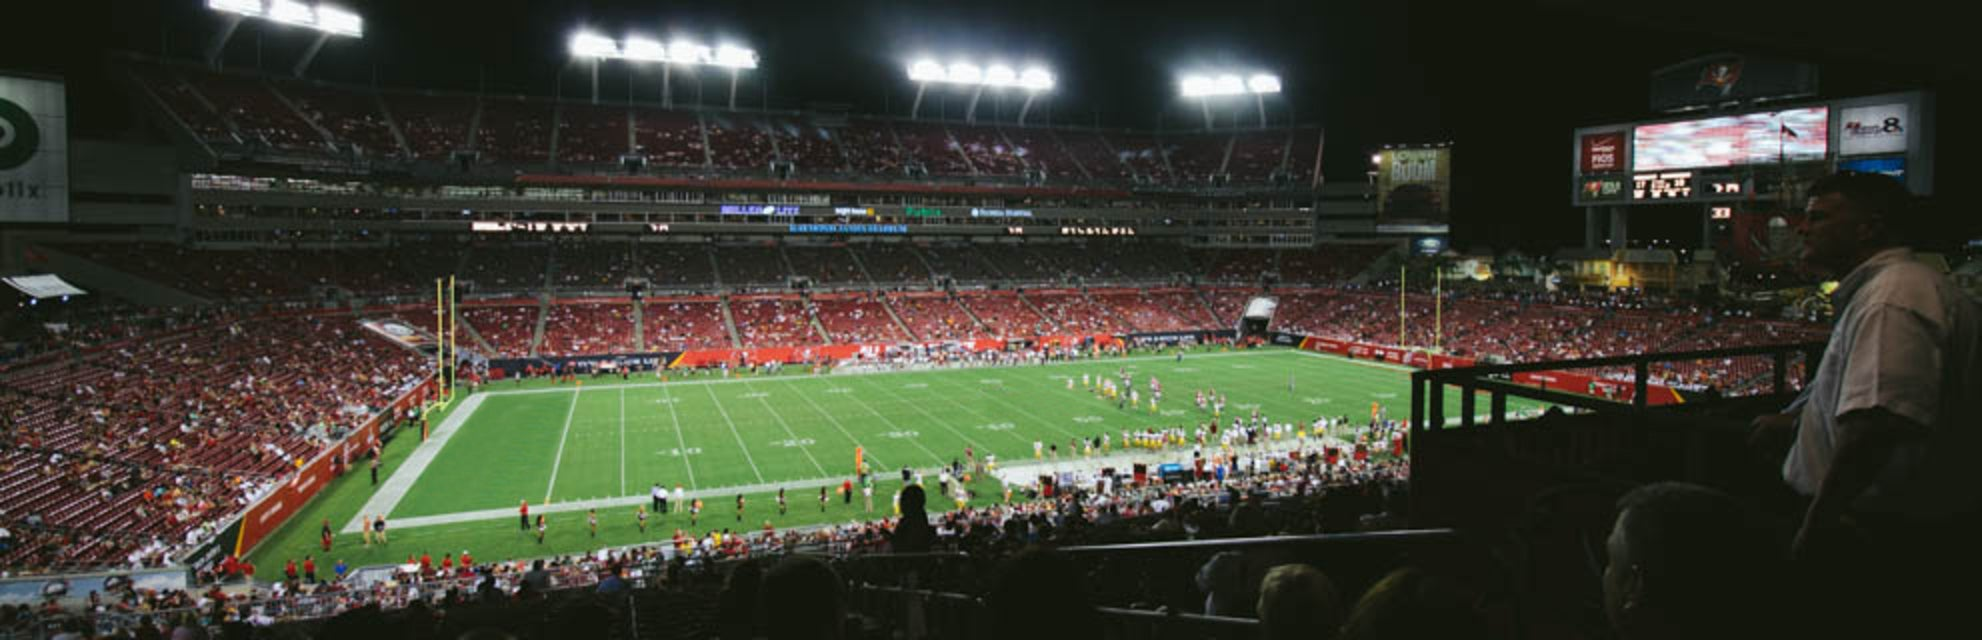 Seat view from Middle Sideline